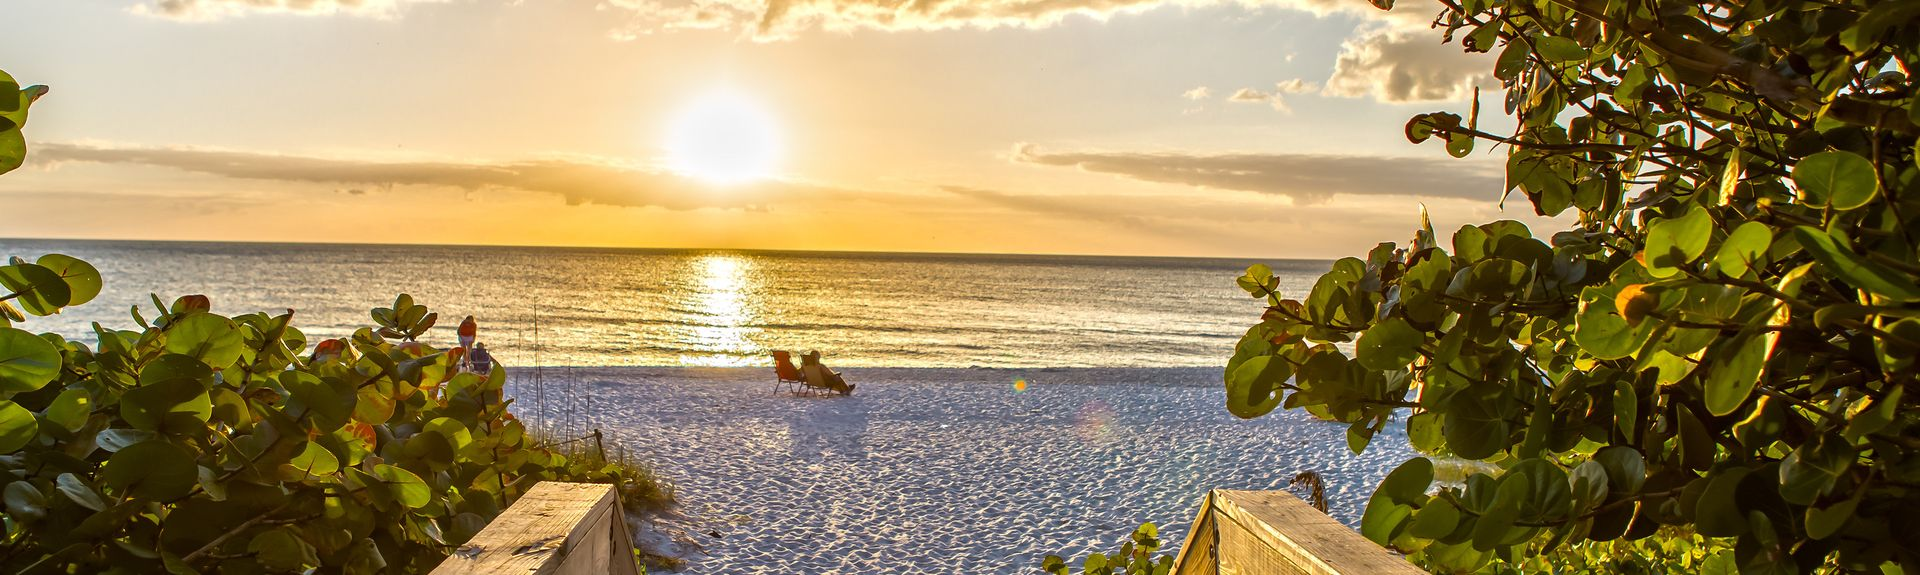 Naples Beach, Naples, Florida, USA